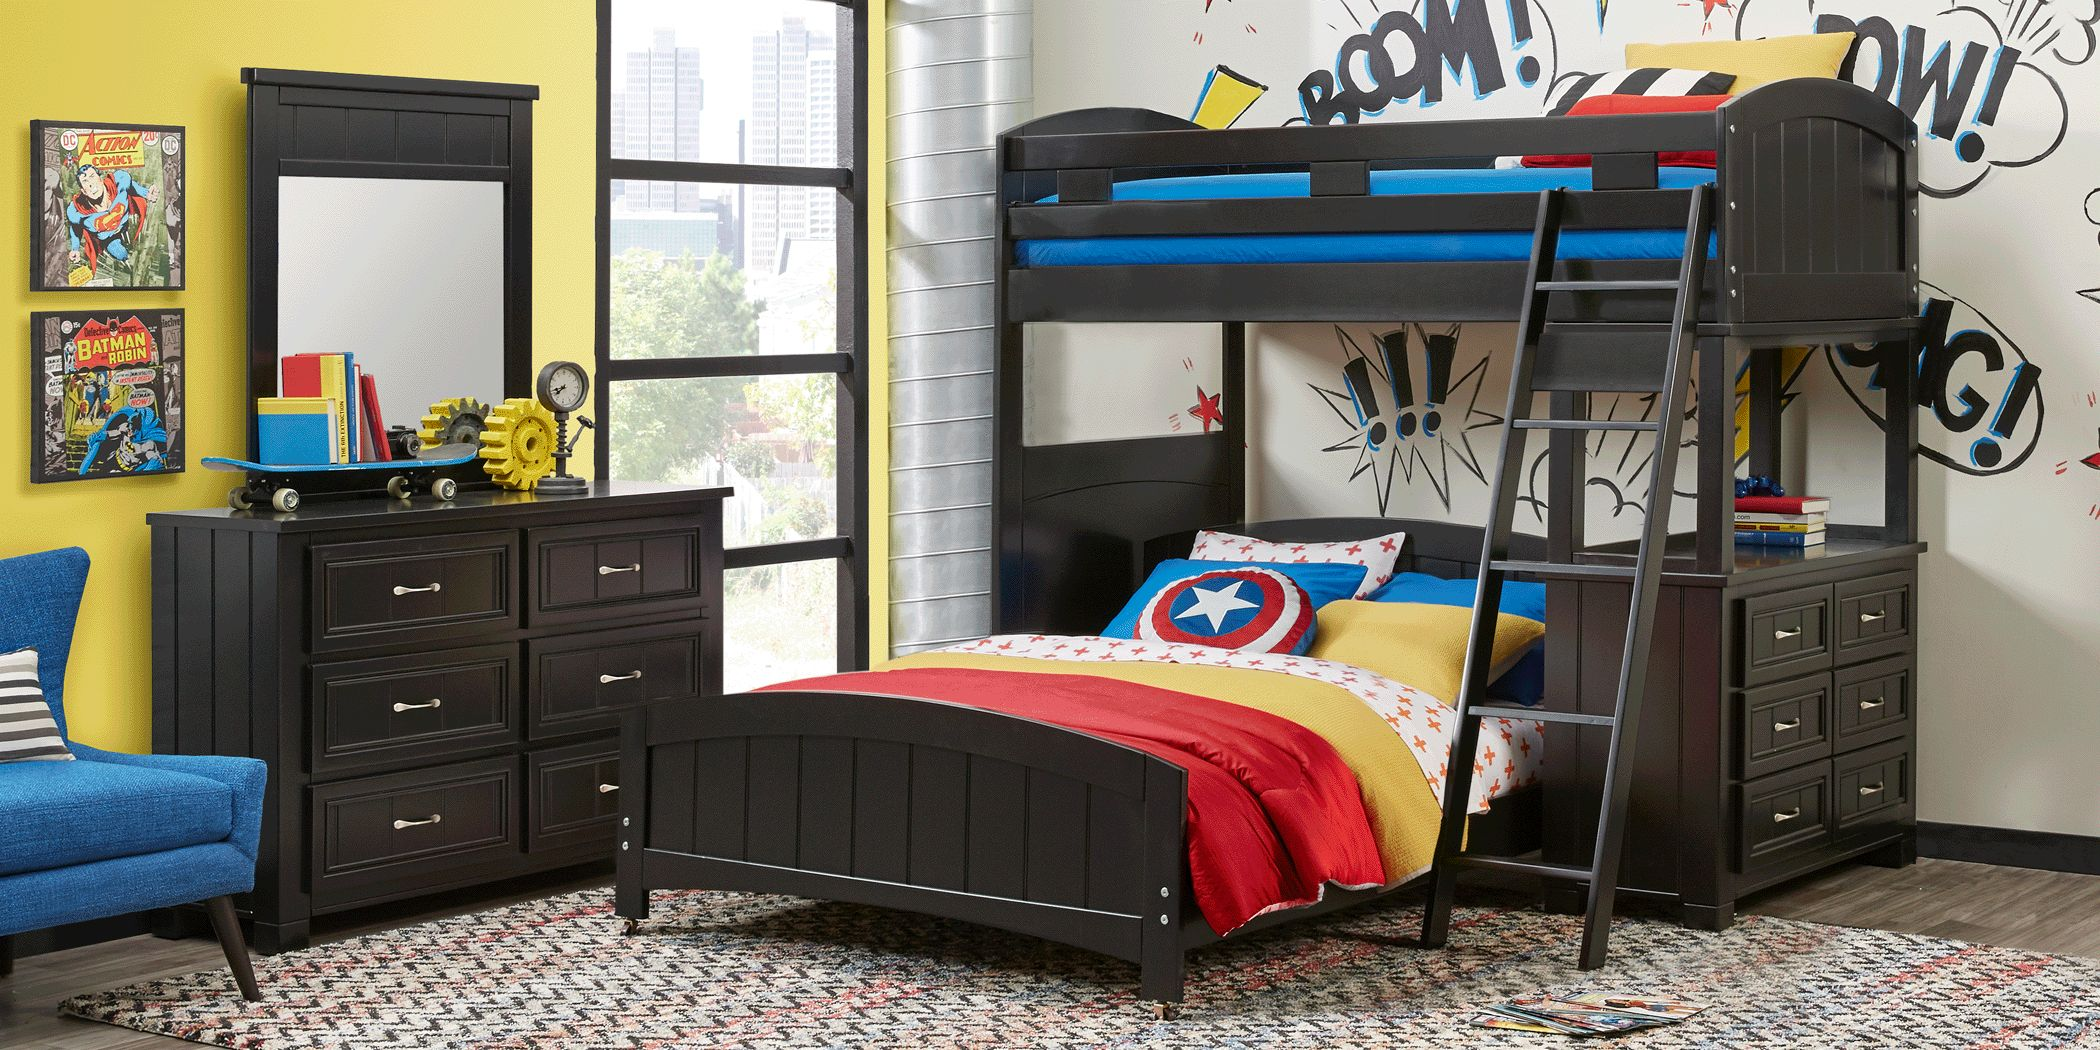 Picture of: Bunk Beds With Dresser